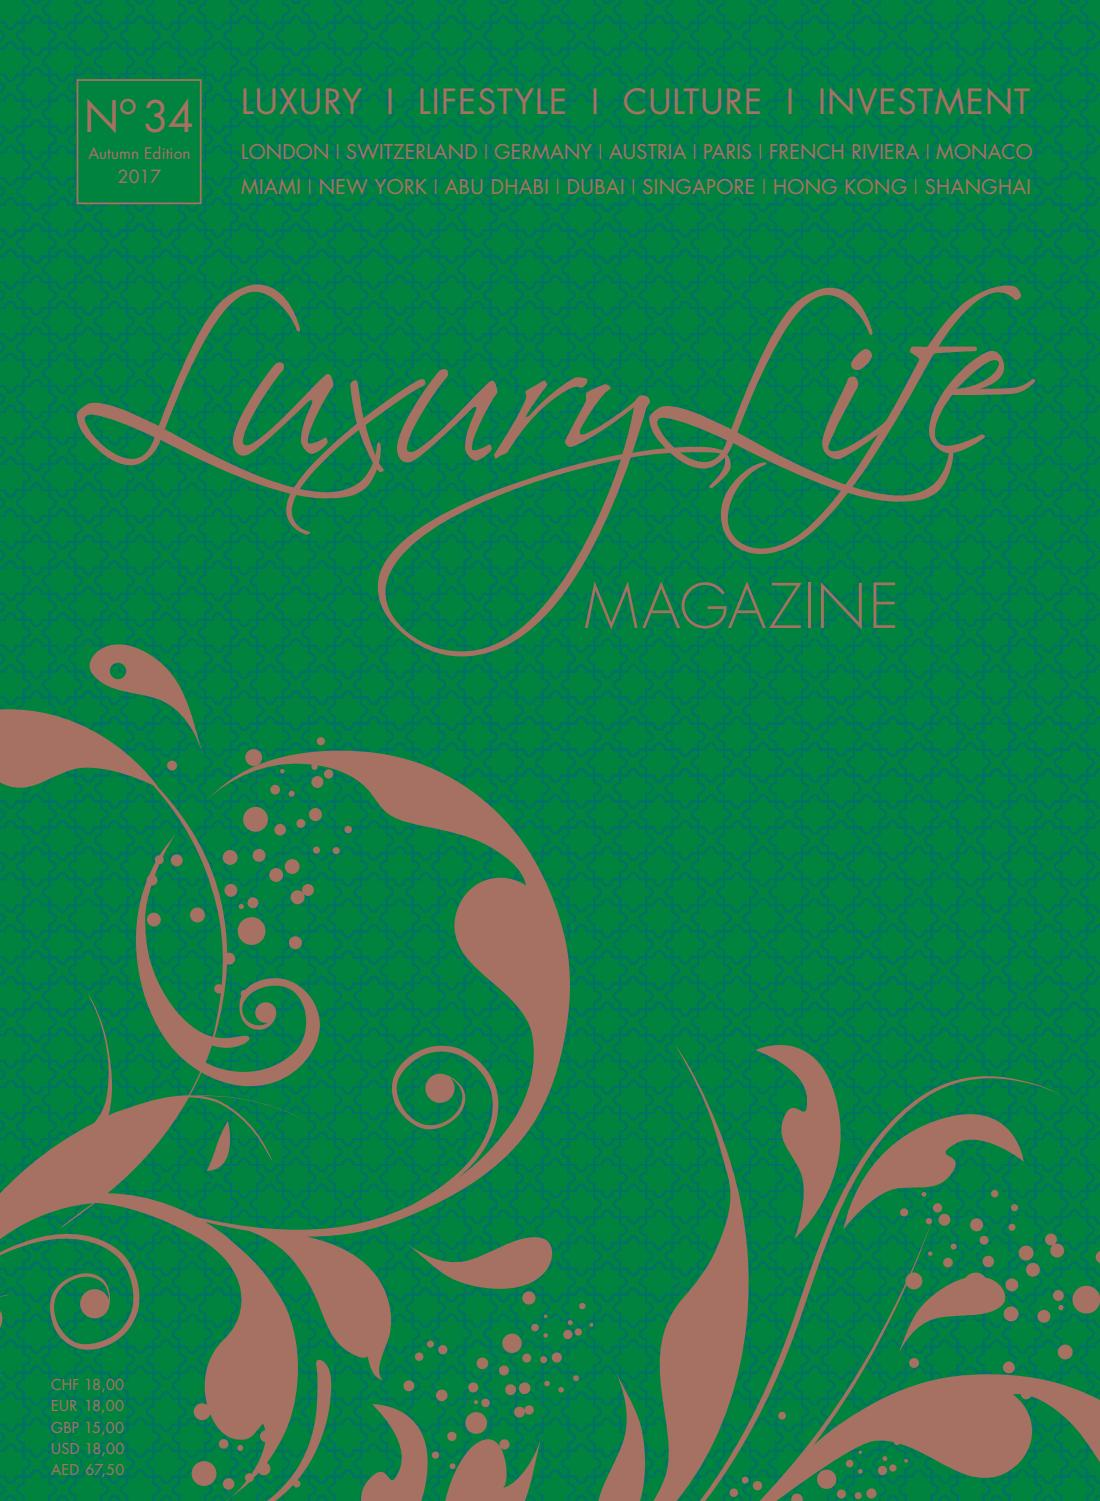 Luxury Life MAGAZINE Autumn Edition 2017 by Luxury Life MAGAZINE ...